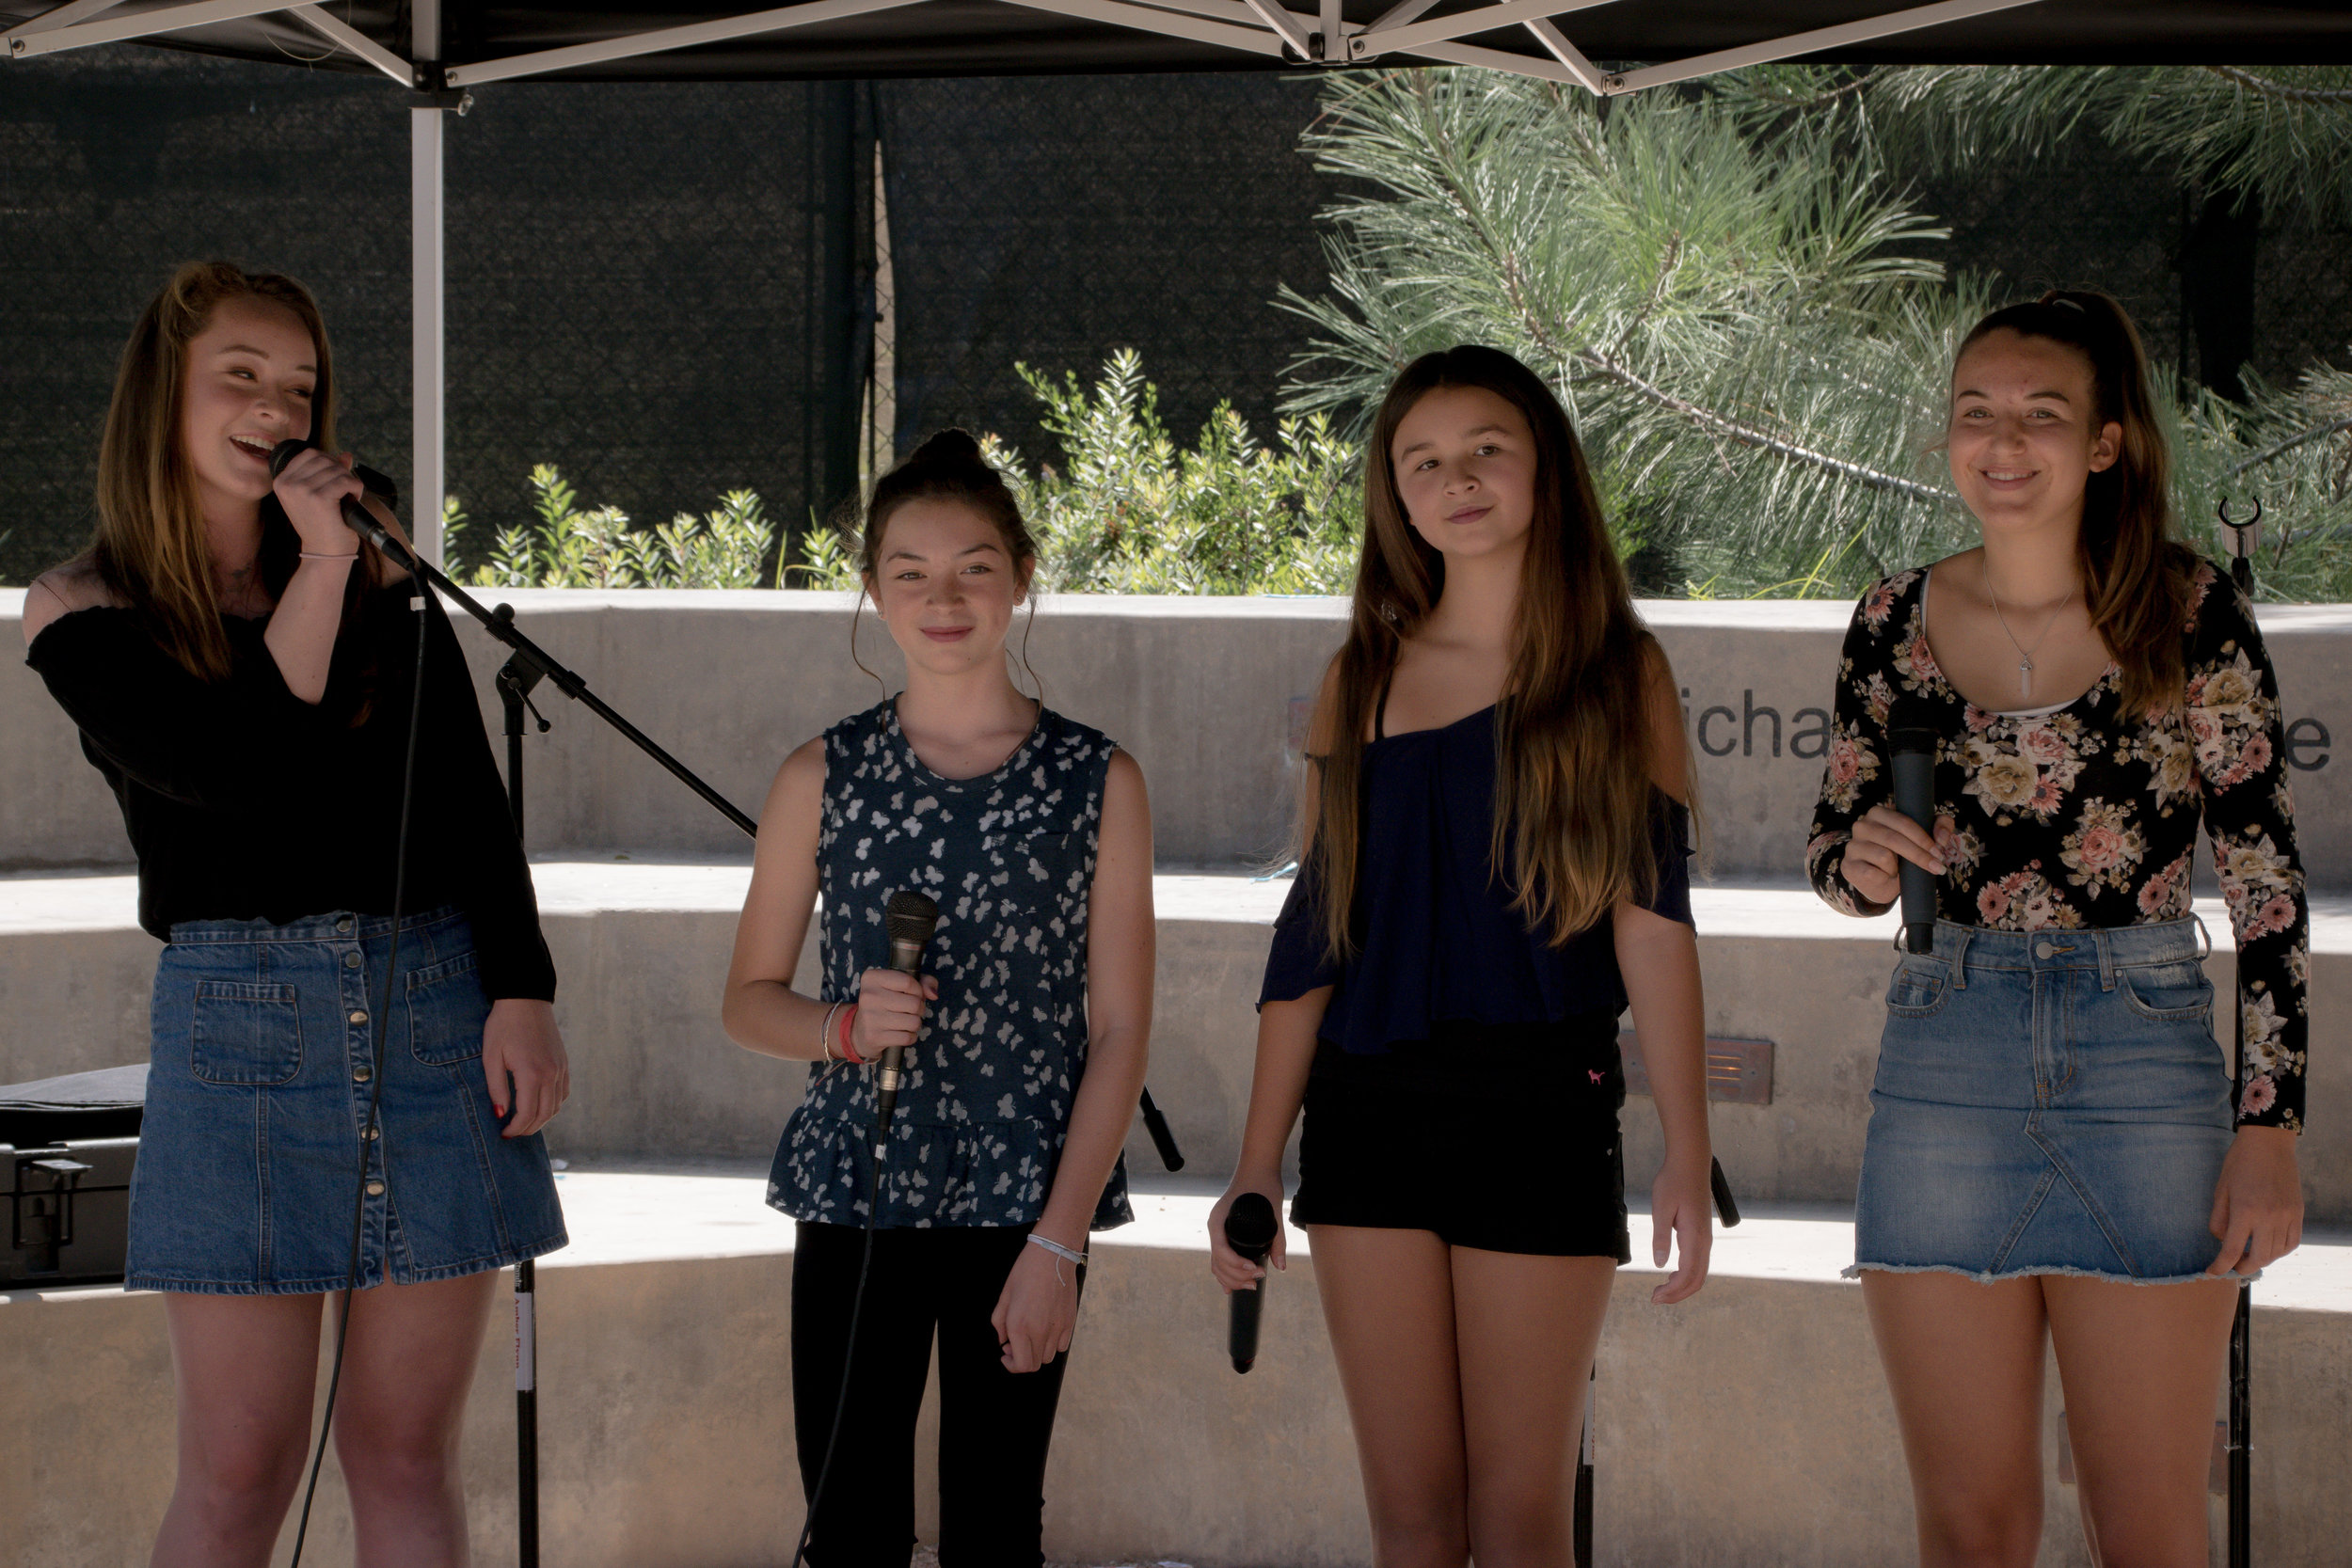 4th Voice Vocal Group performs at LUX Art Institute